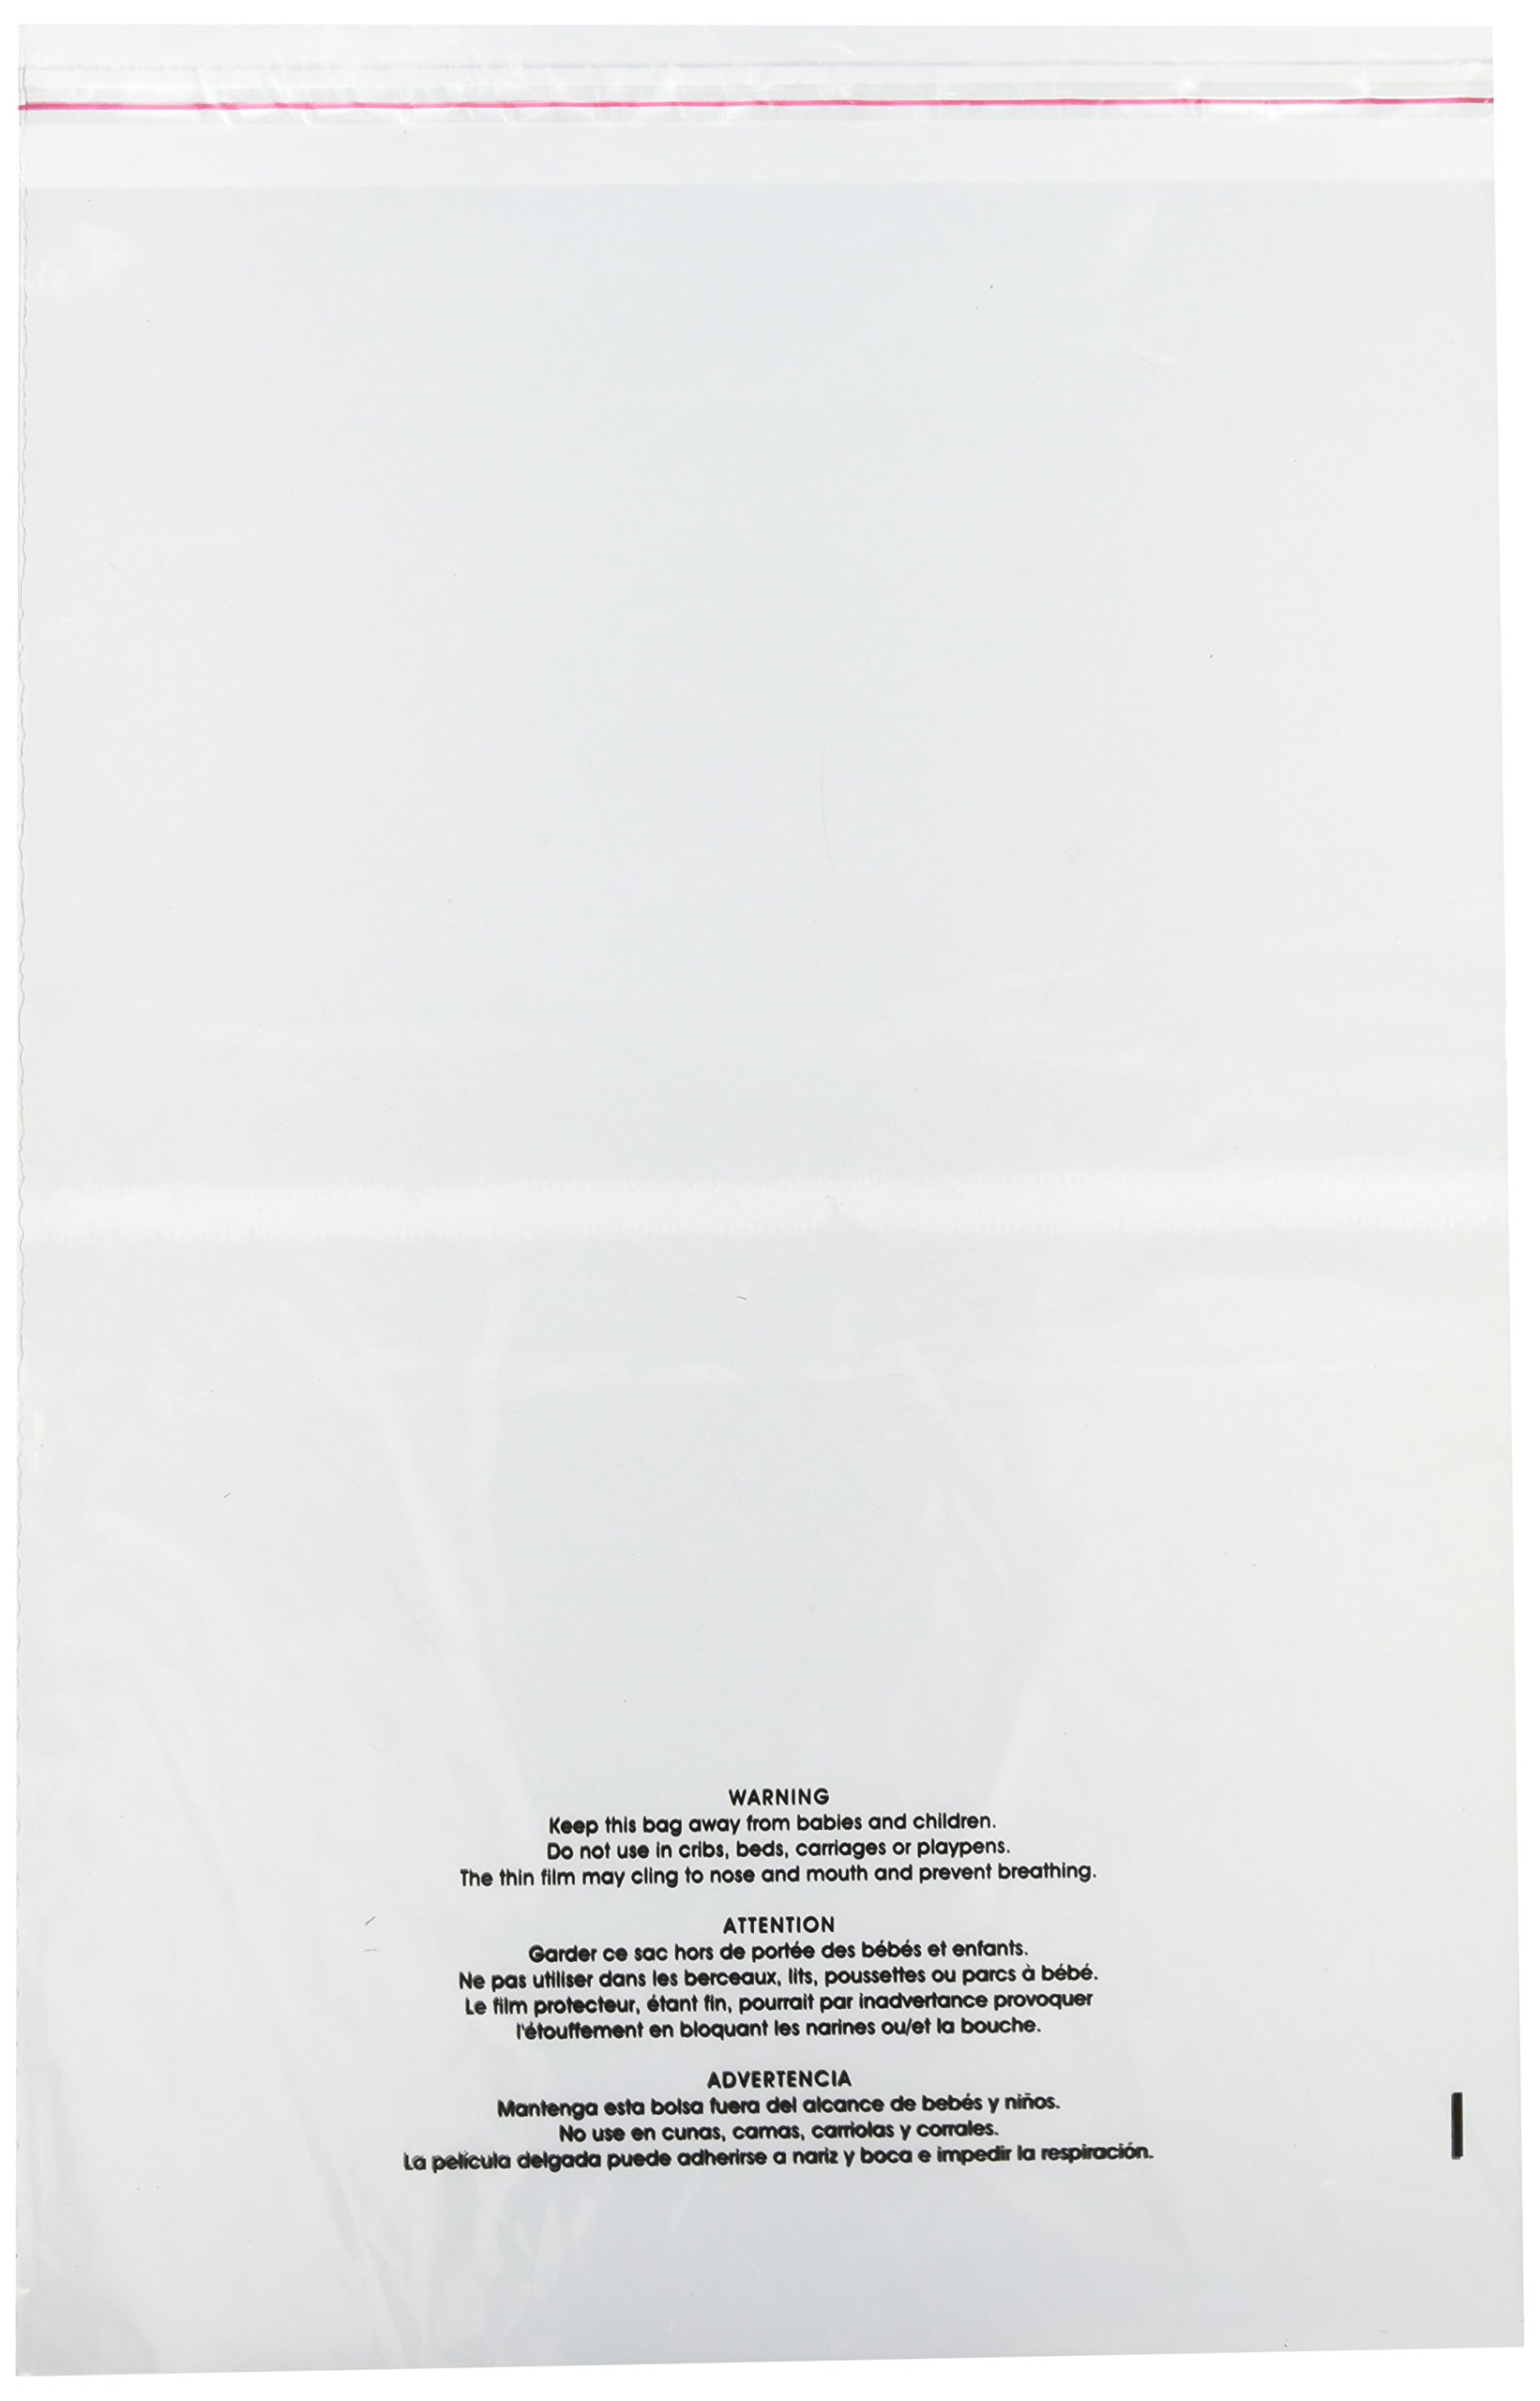 Uline 14'' x 20'' Self Seal Poly Bags with Suffocation Warning, Easy Peel and Stick Clear, 1.5 mil (S-19132) 100 count